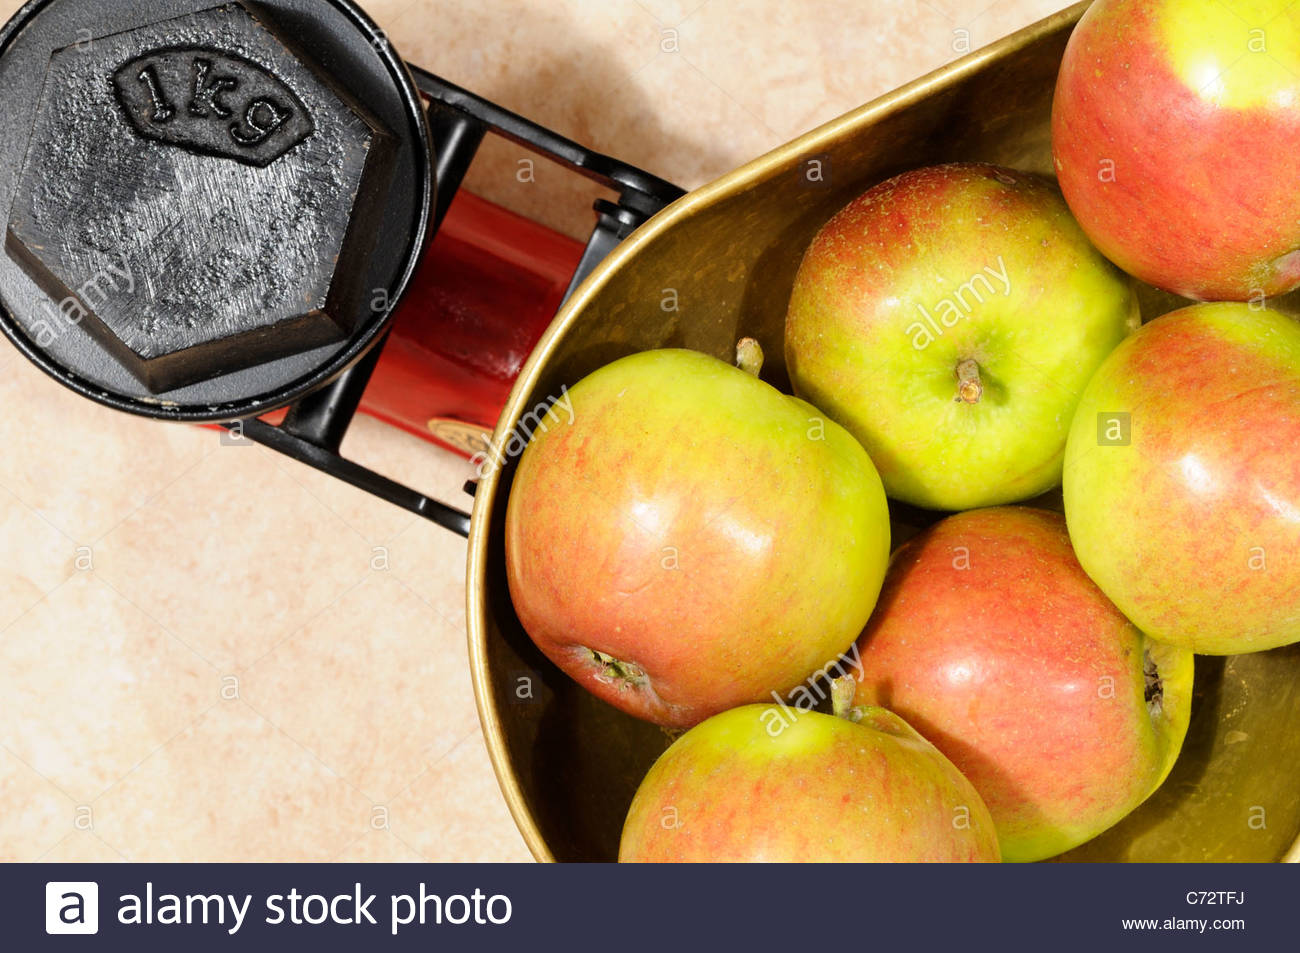 Apples on Kitchen scales 1kg, England - Stock Image